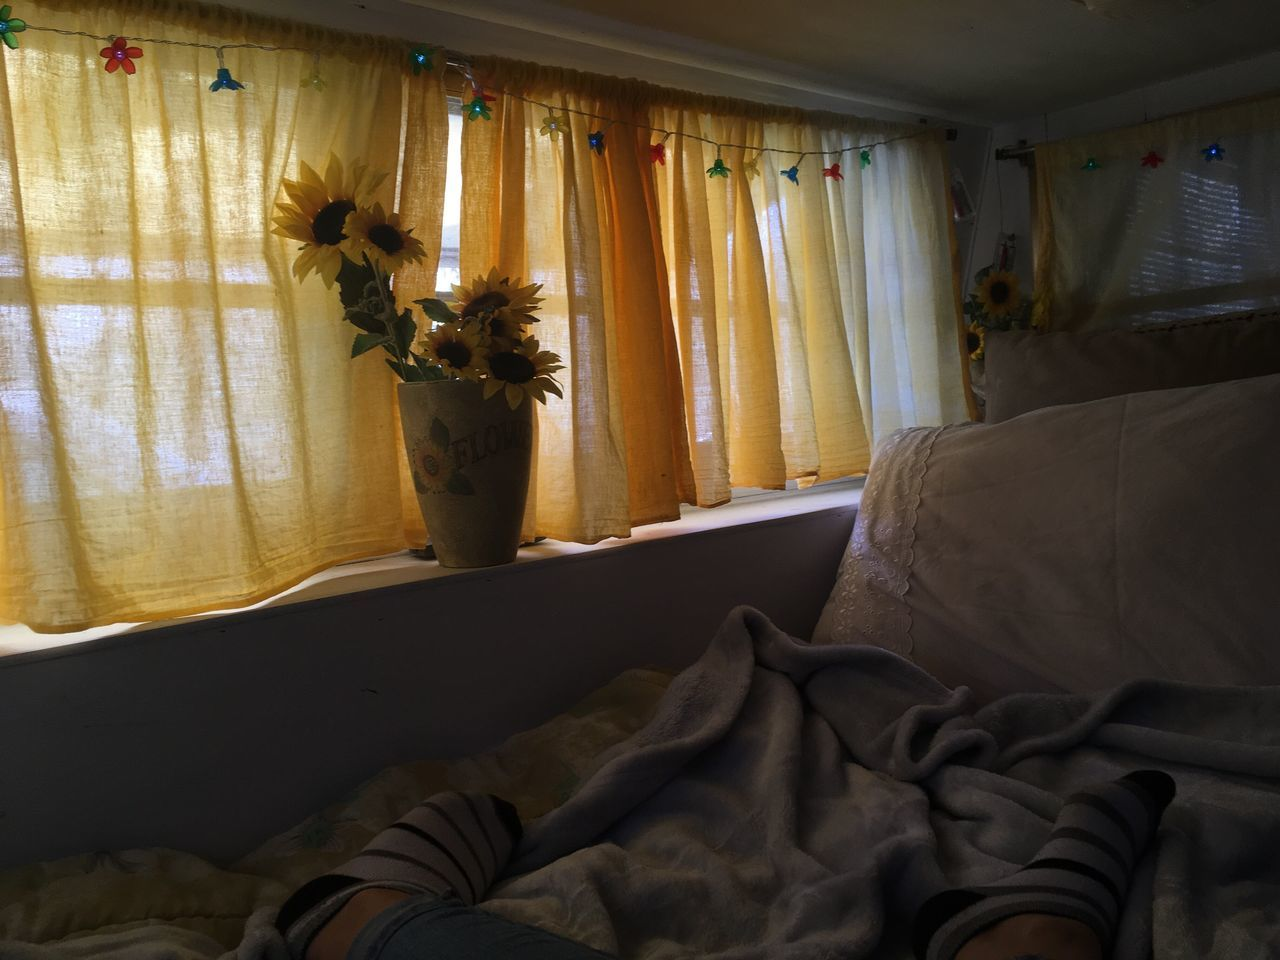 curtain, indoors, sofa, home interior, drapes, window, no people, textile, day, living room